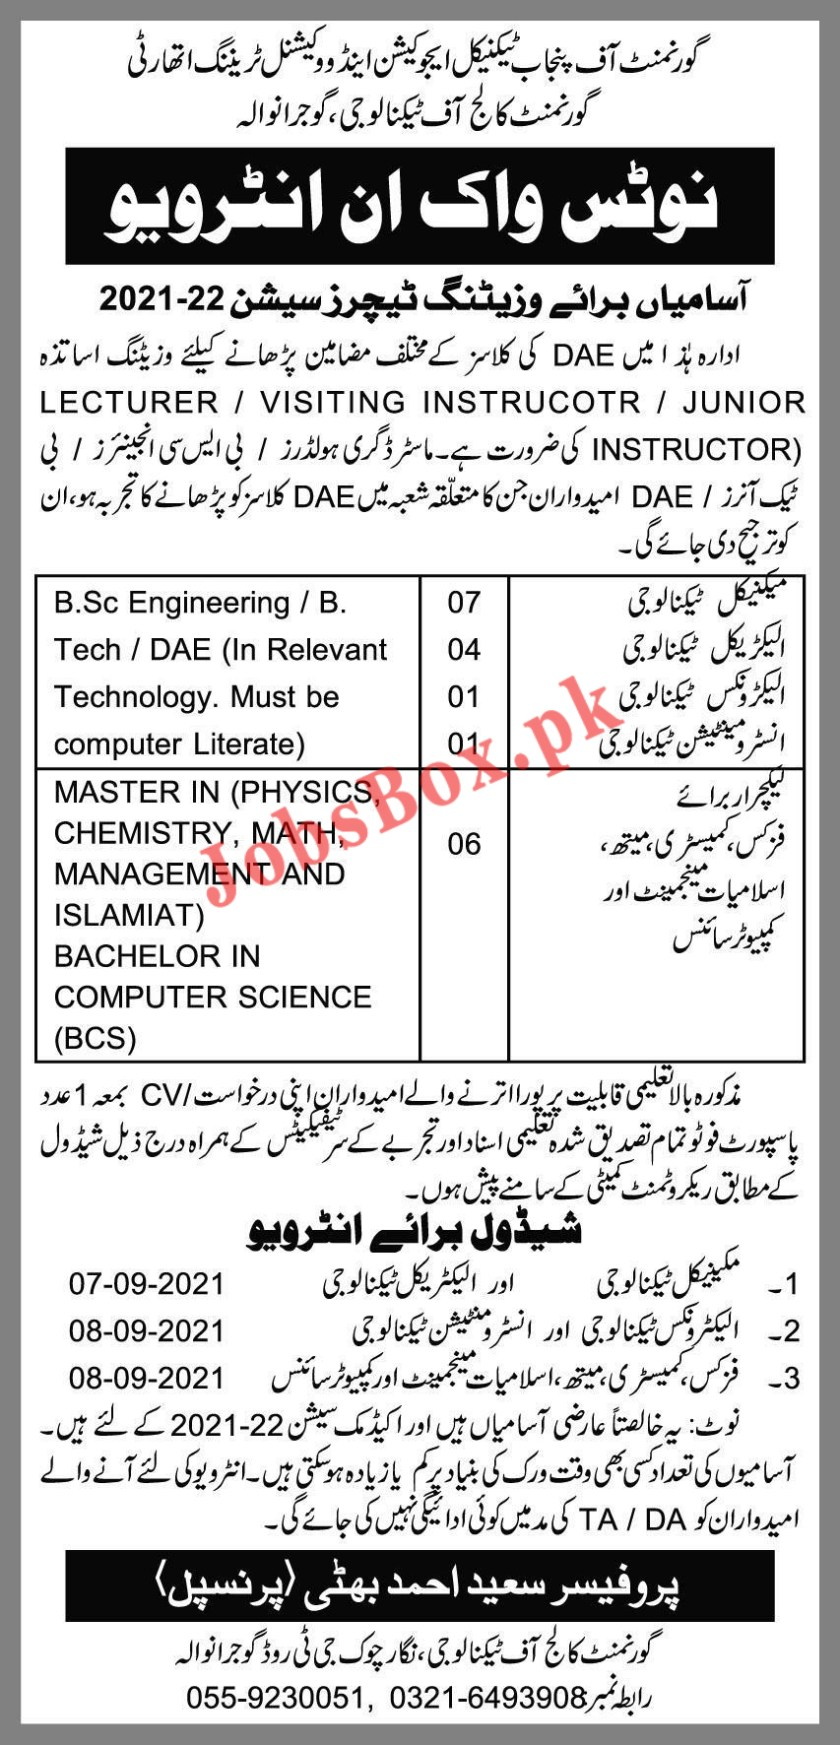 Government College of Technology Gujranwala Jobs 2021